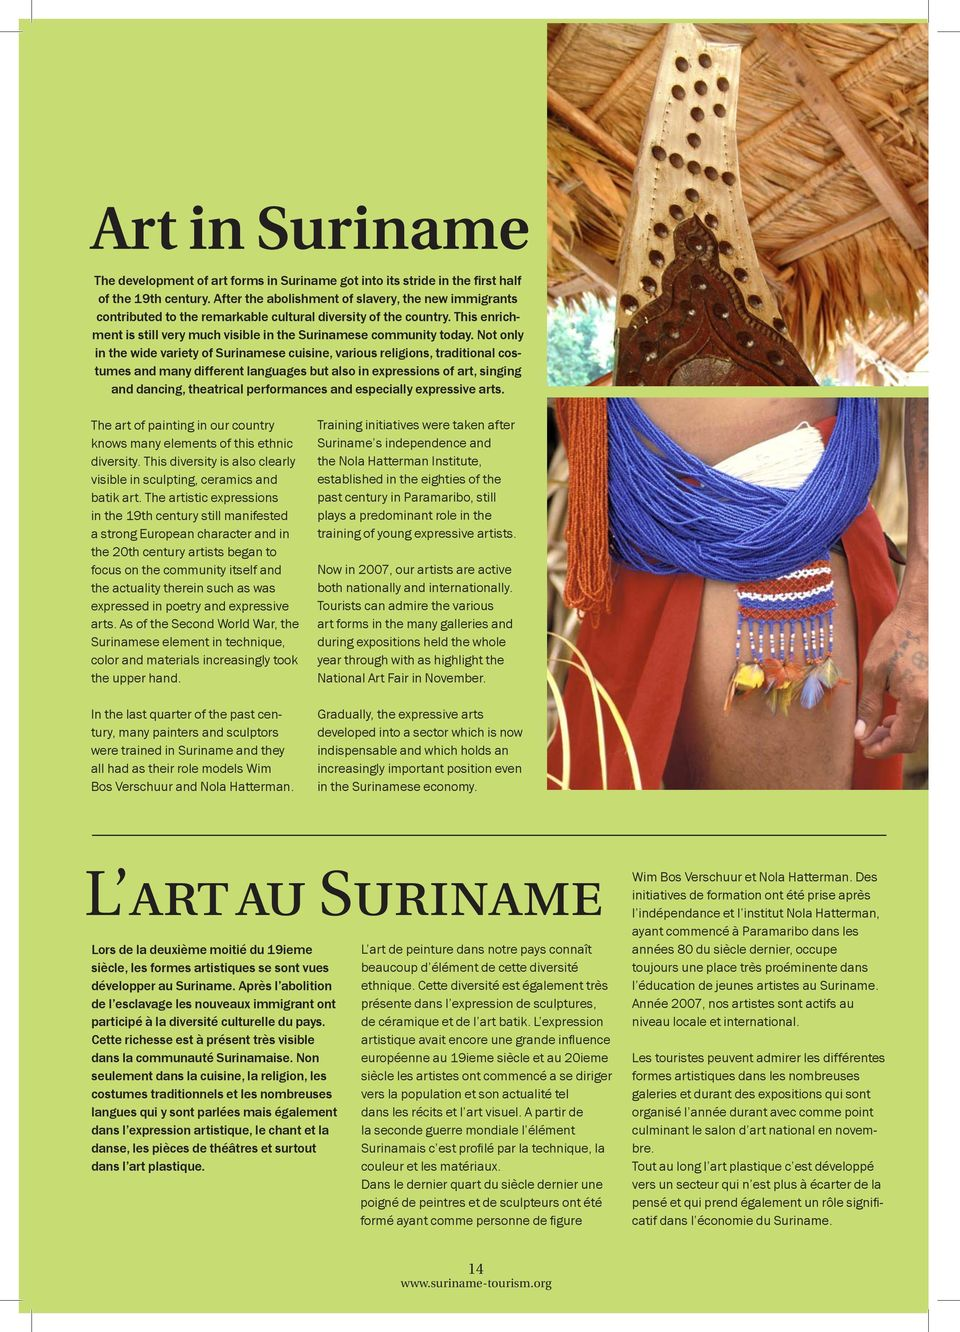 Not only in the wide variety of Surinamese cuisine, various religions, traditional costumes and many different languages but also in expressions of art, singing and dancing, theatrical performances